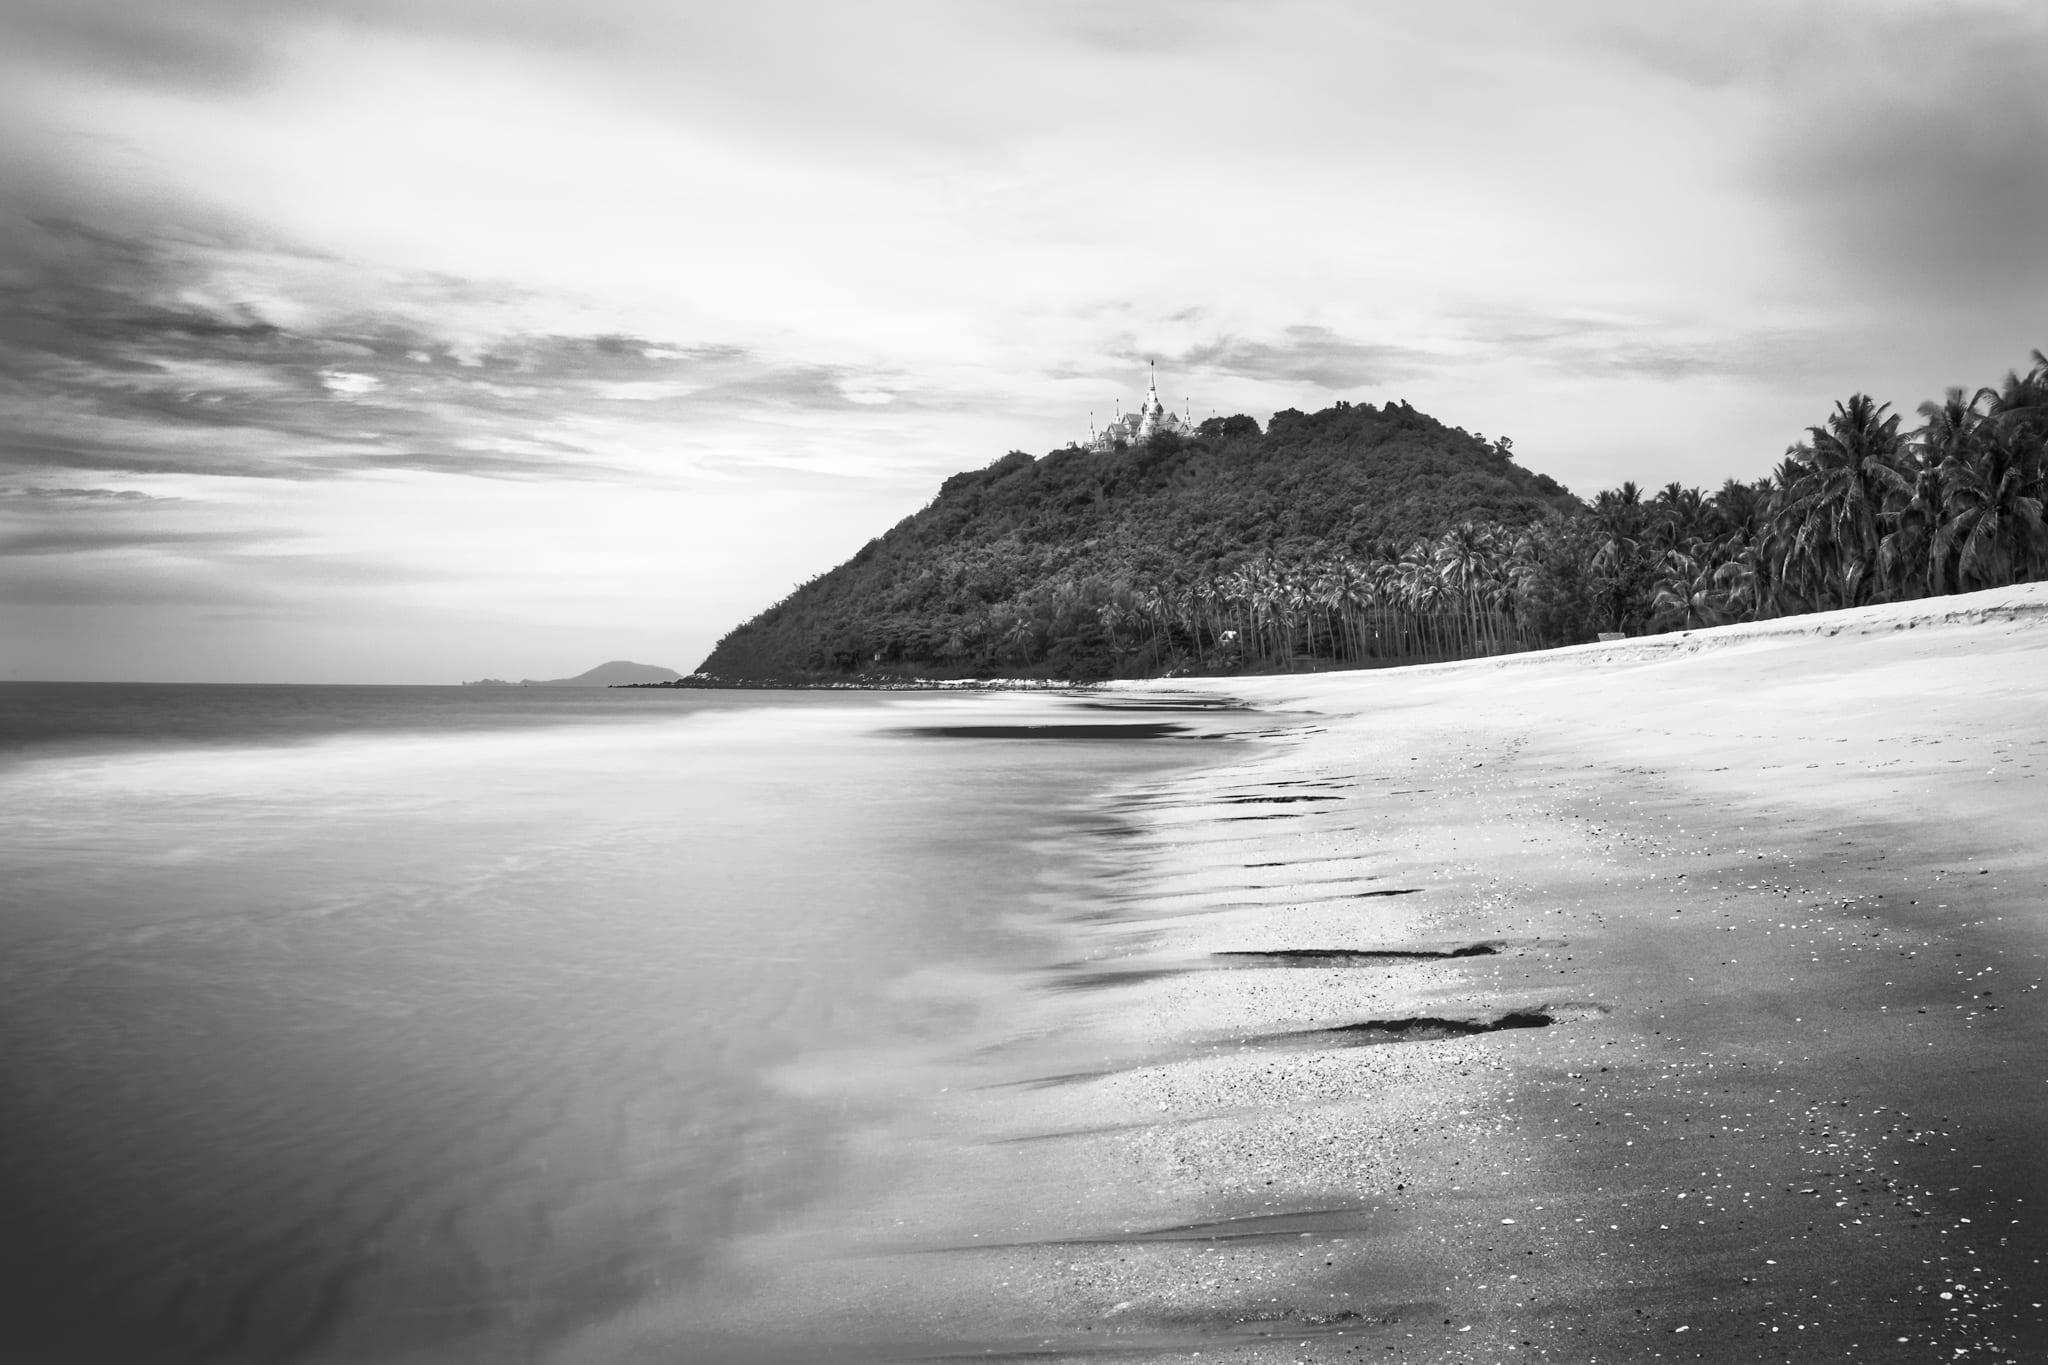 Black & white long exposure of Wat Tang Sai temple on Thongchai Mountain seen from Baan Krut beach, Thailand.